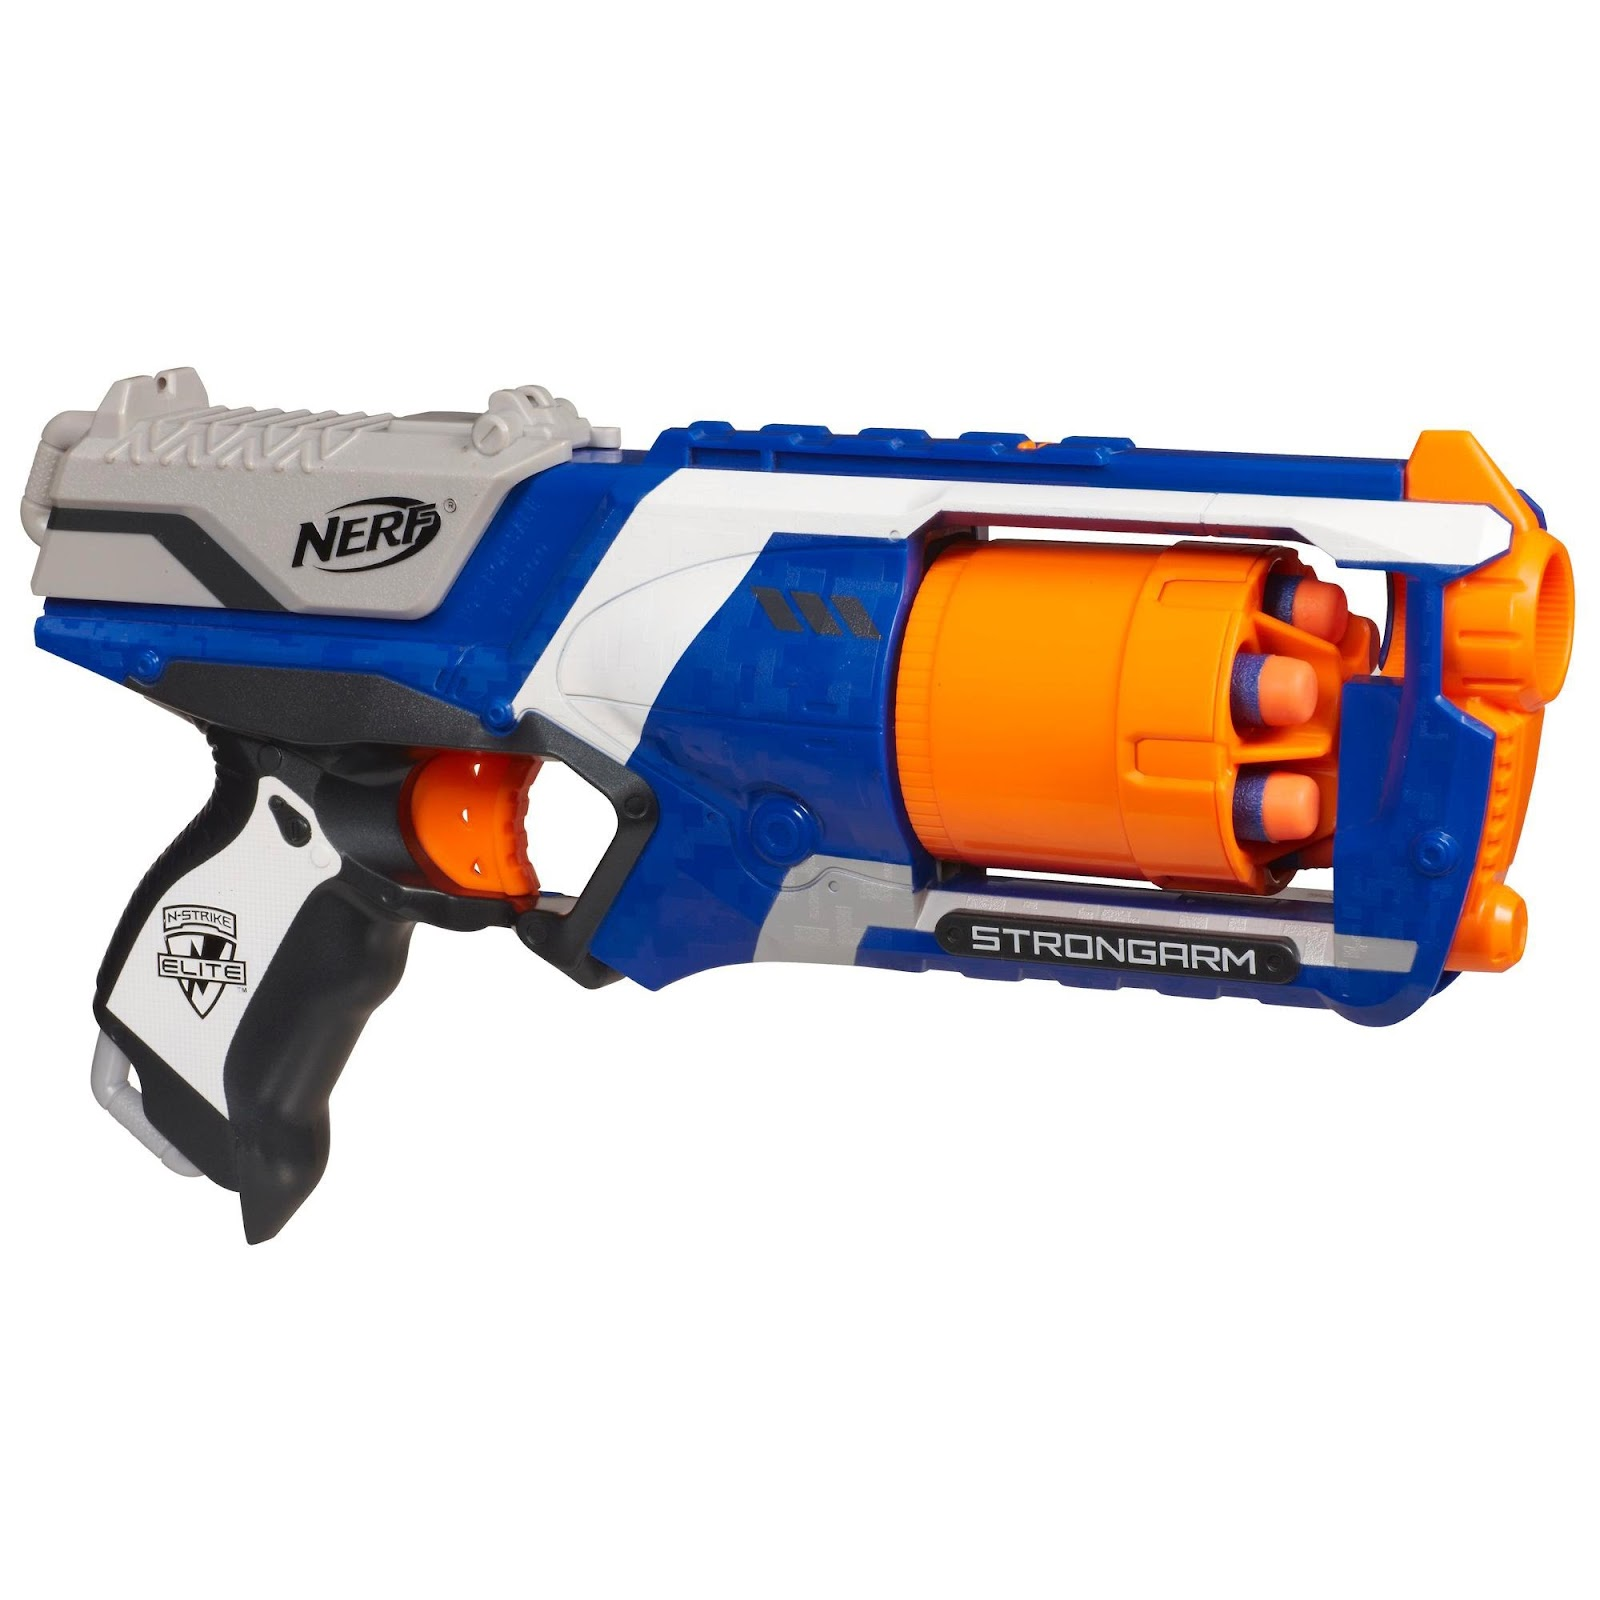 review da nerf elite strongarm